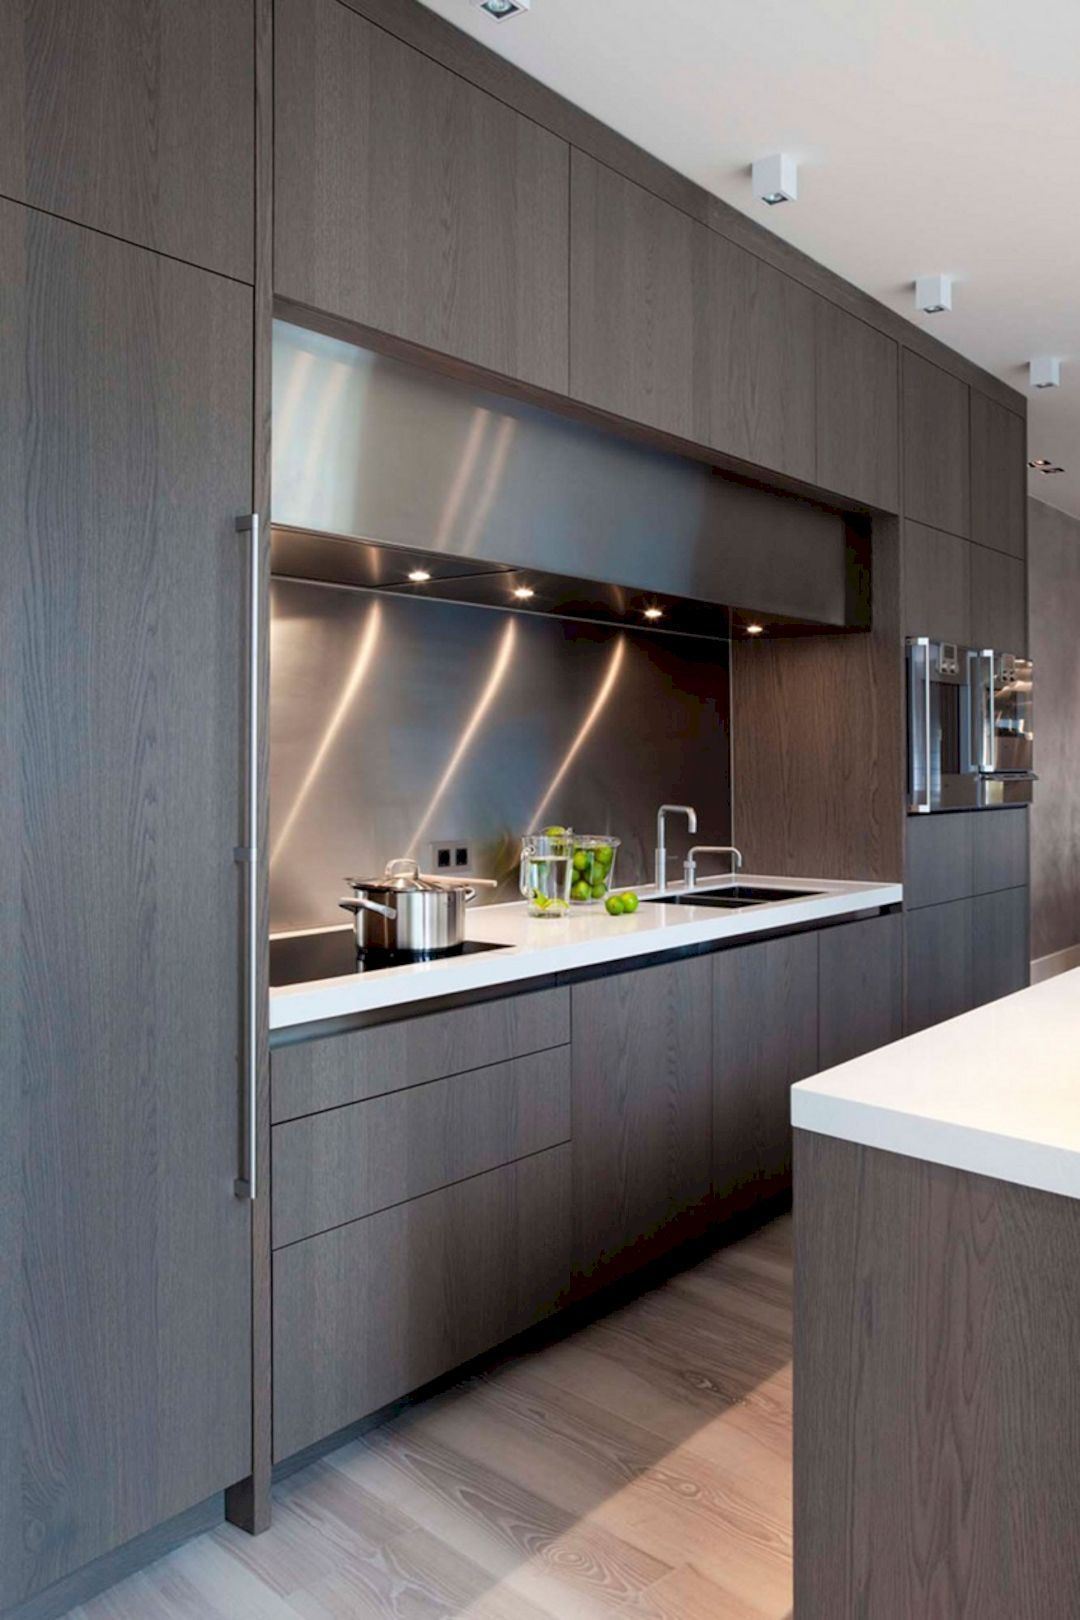 Best sink to turn your kitchen on and remodel Дизайн интерьера